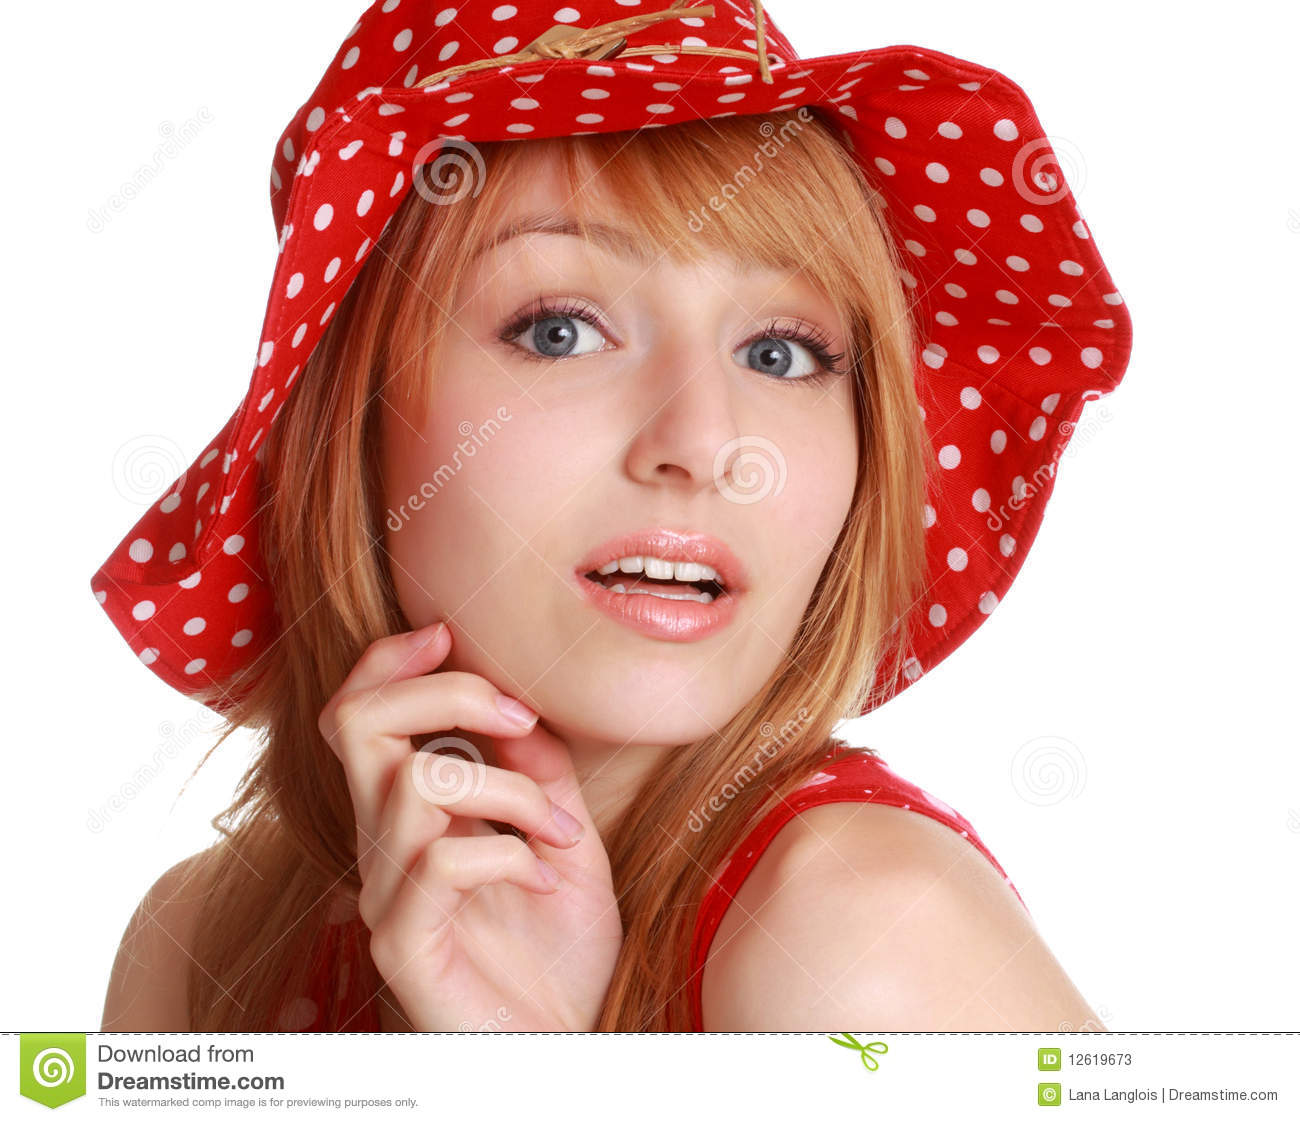 Cute Woman With Hat: Cute Girl With Red Dress And Hat Stock Photos